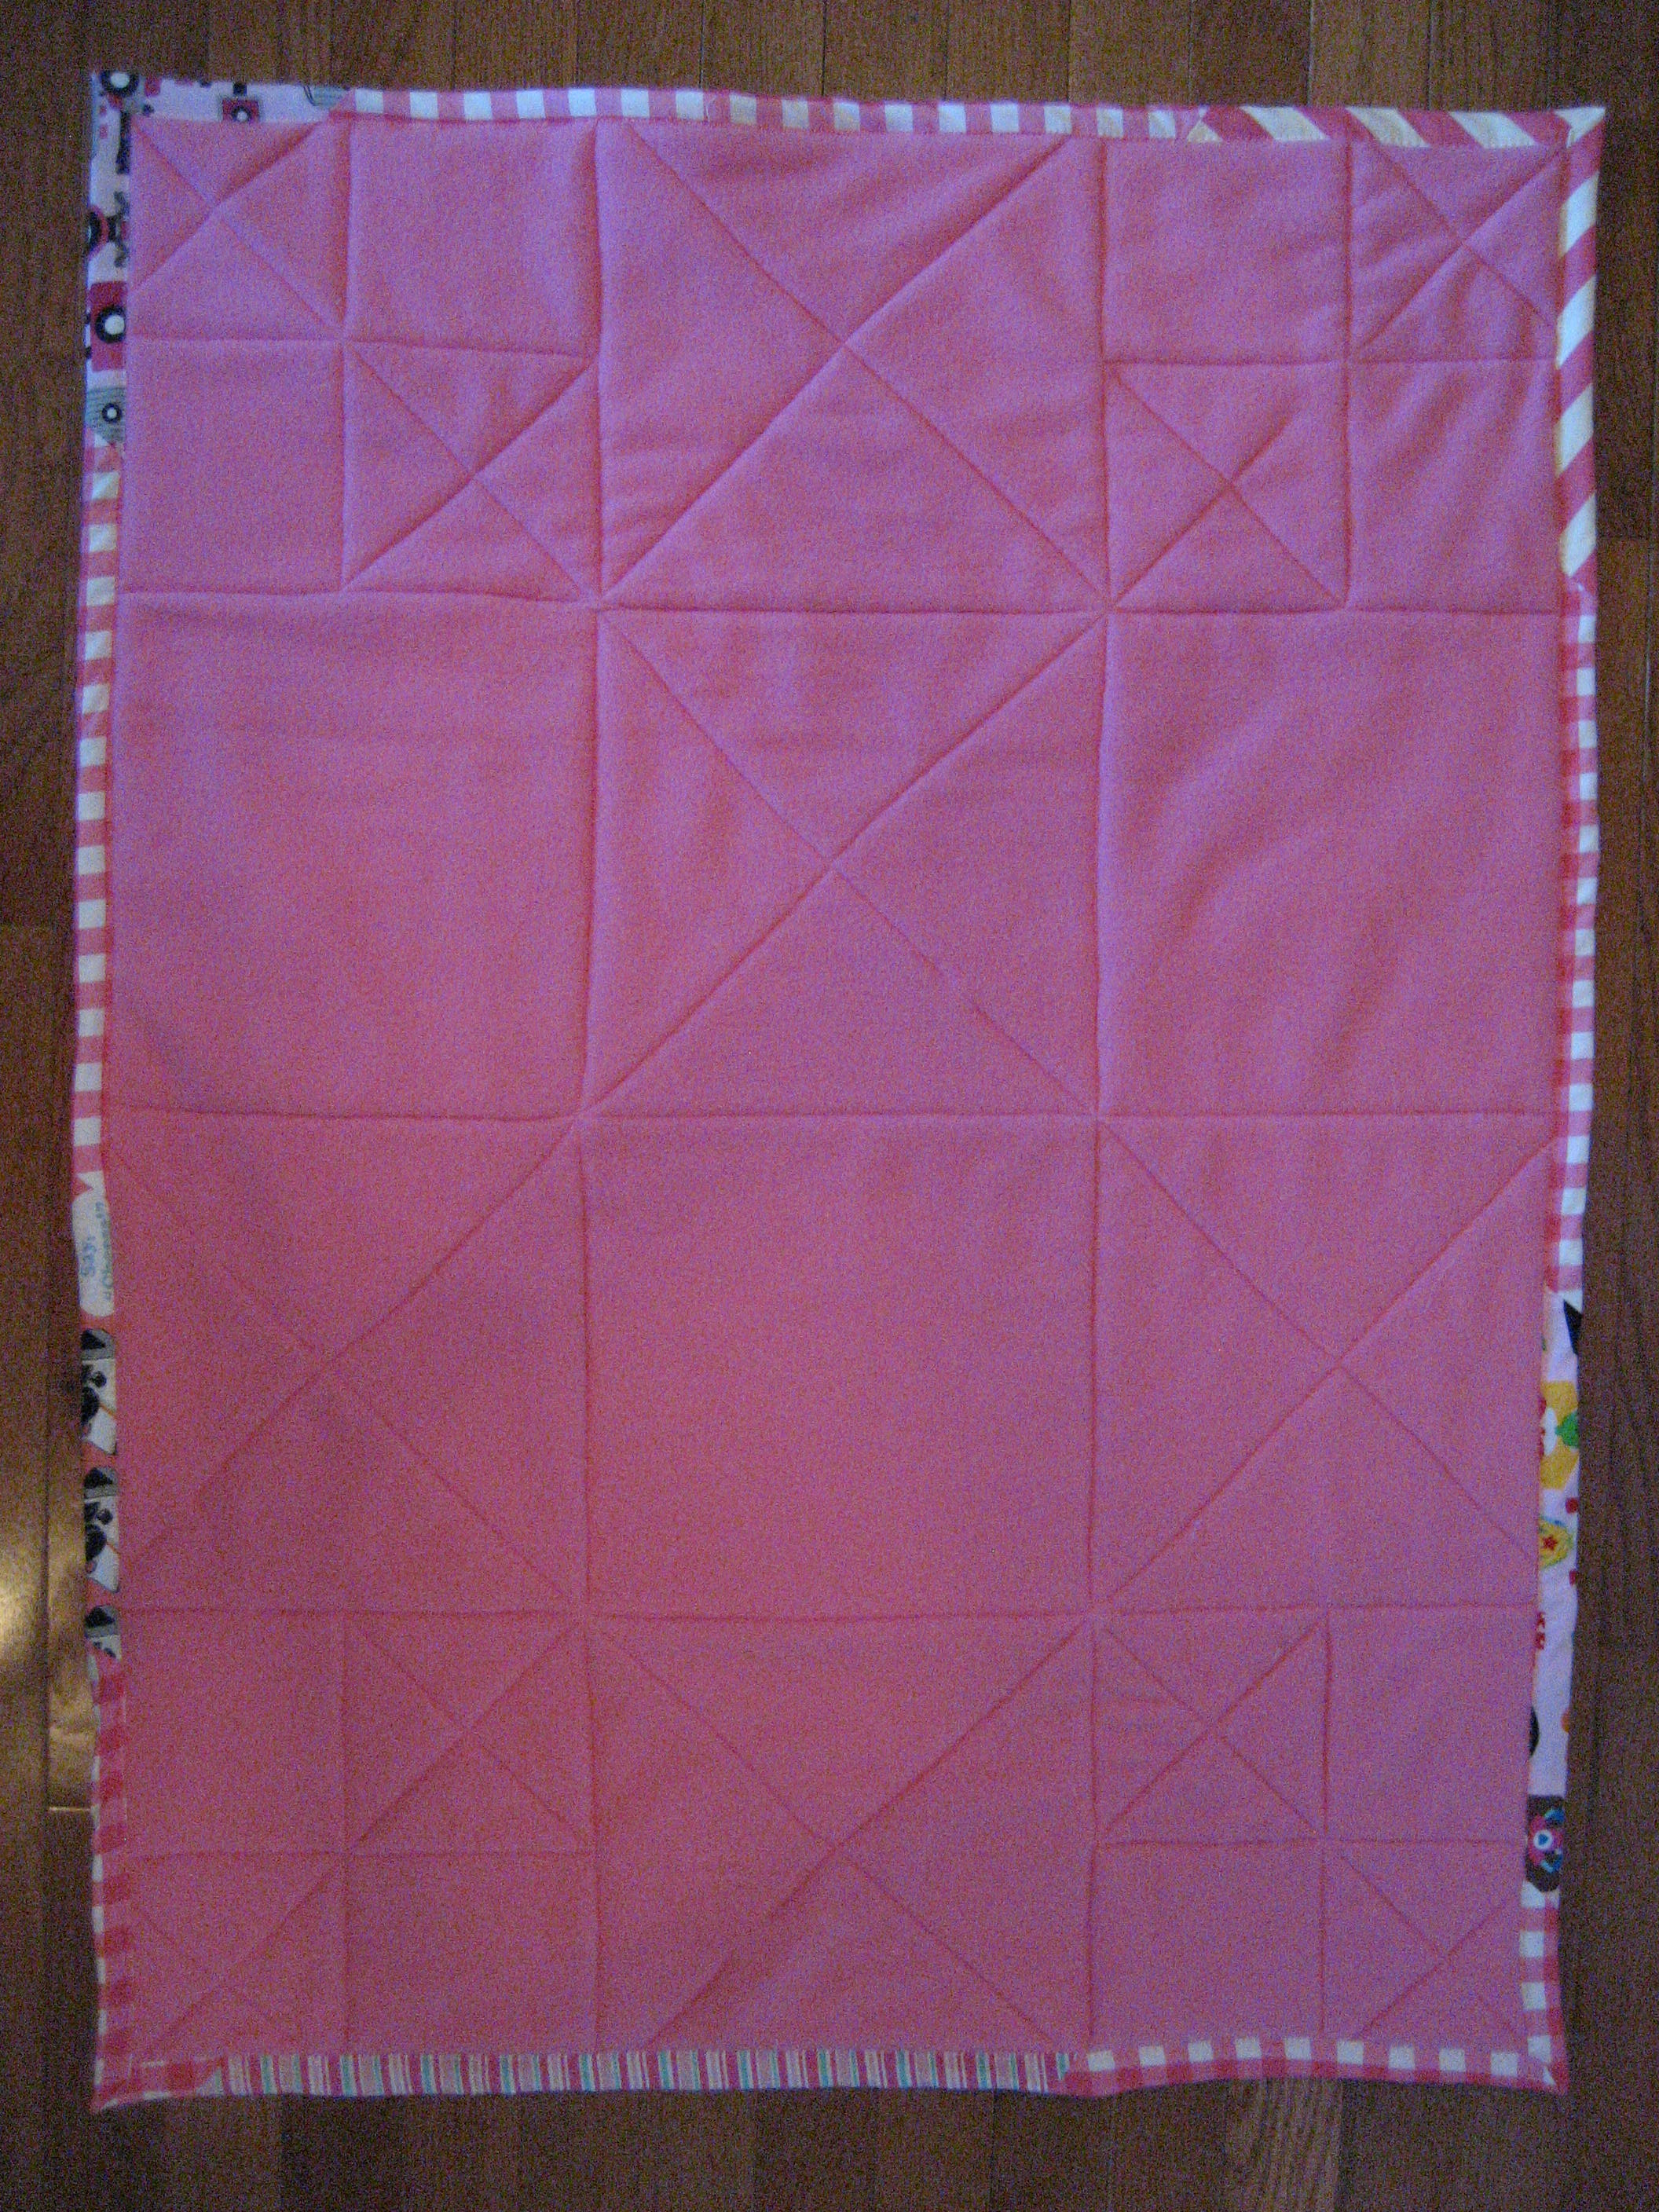 Back of quilt 2.15.15